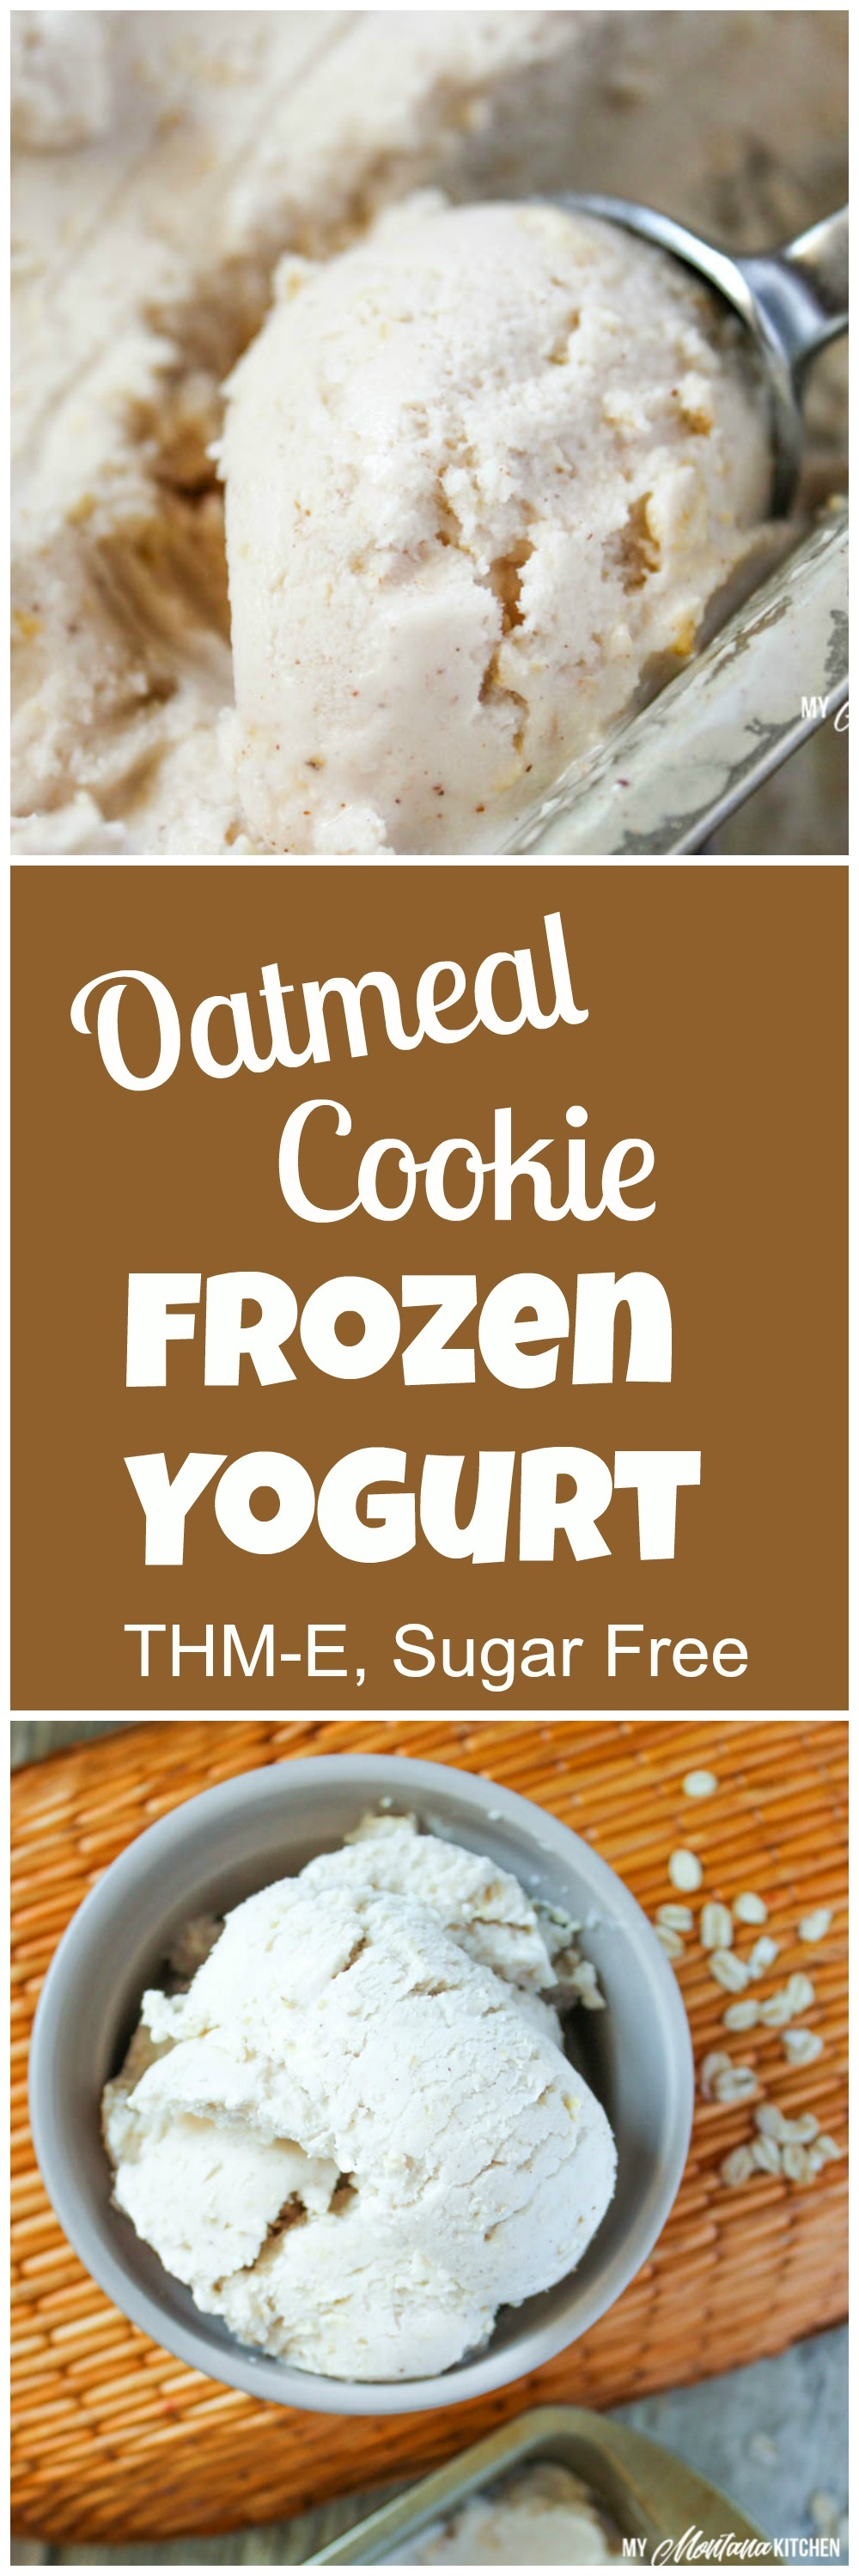 Oatmeal Cookie Frozen Yogurt (THM-E, Sugar Free, Low Fat)